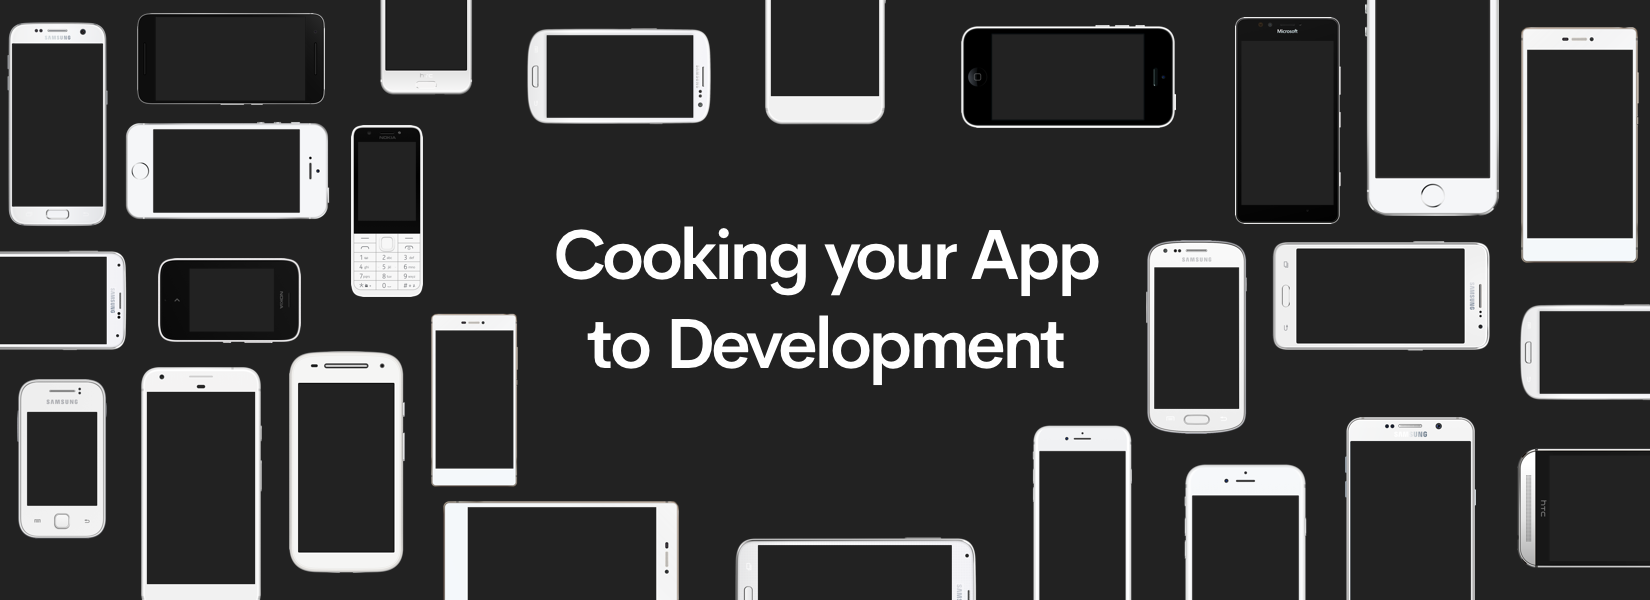 Cooking your App to Development